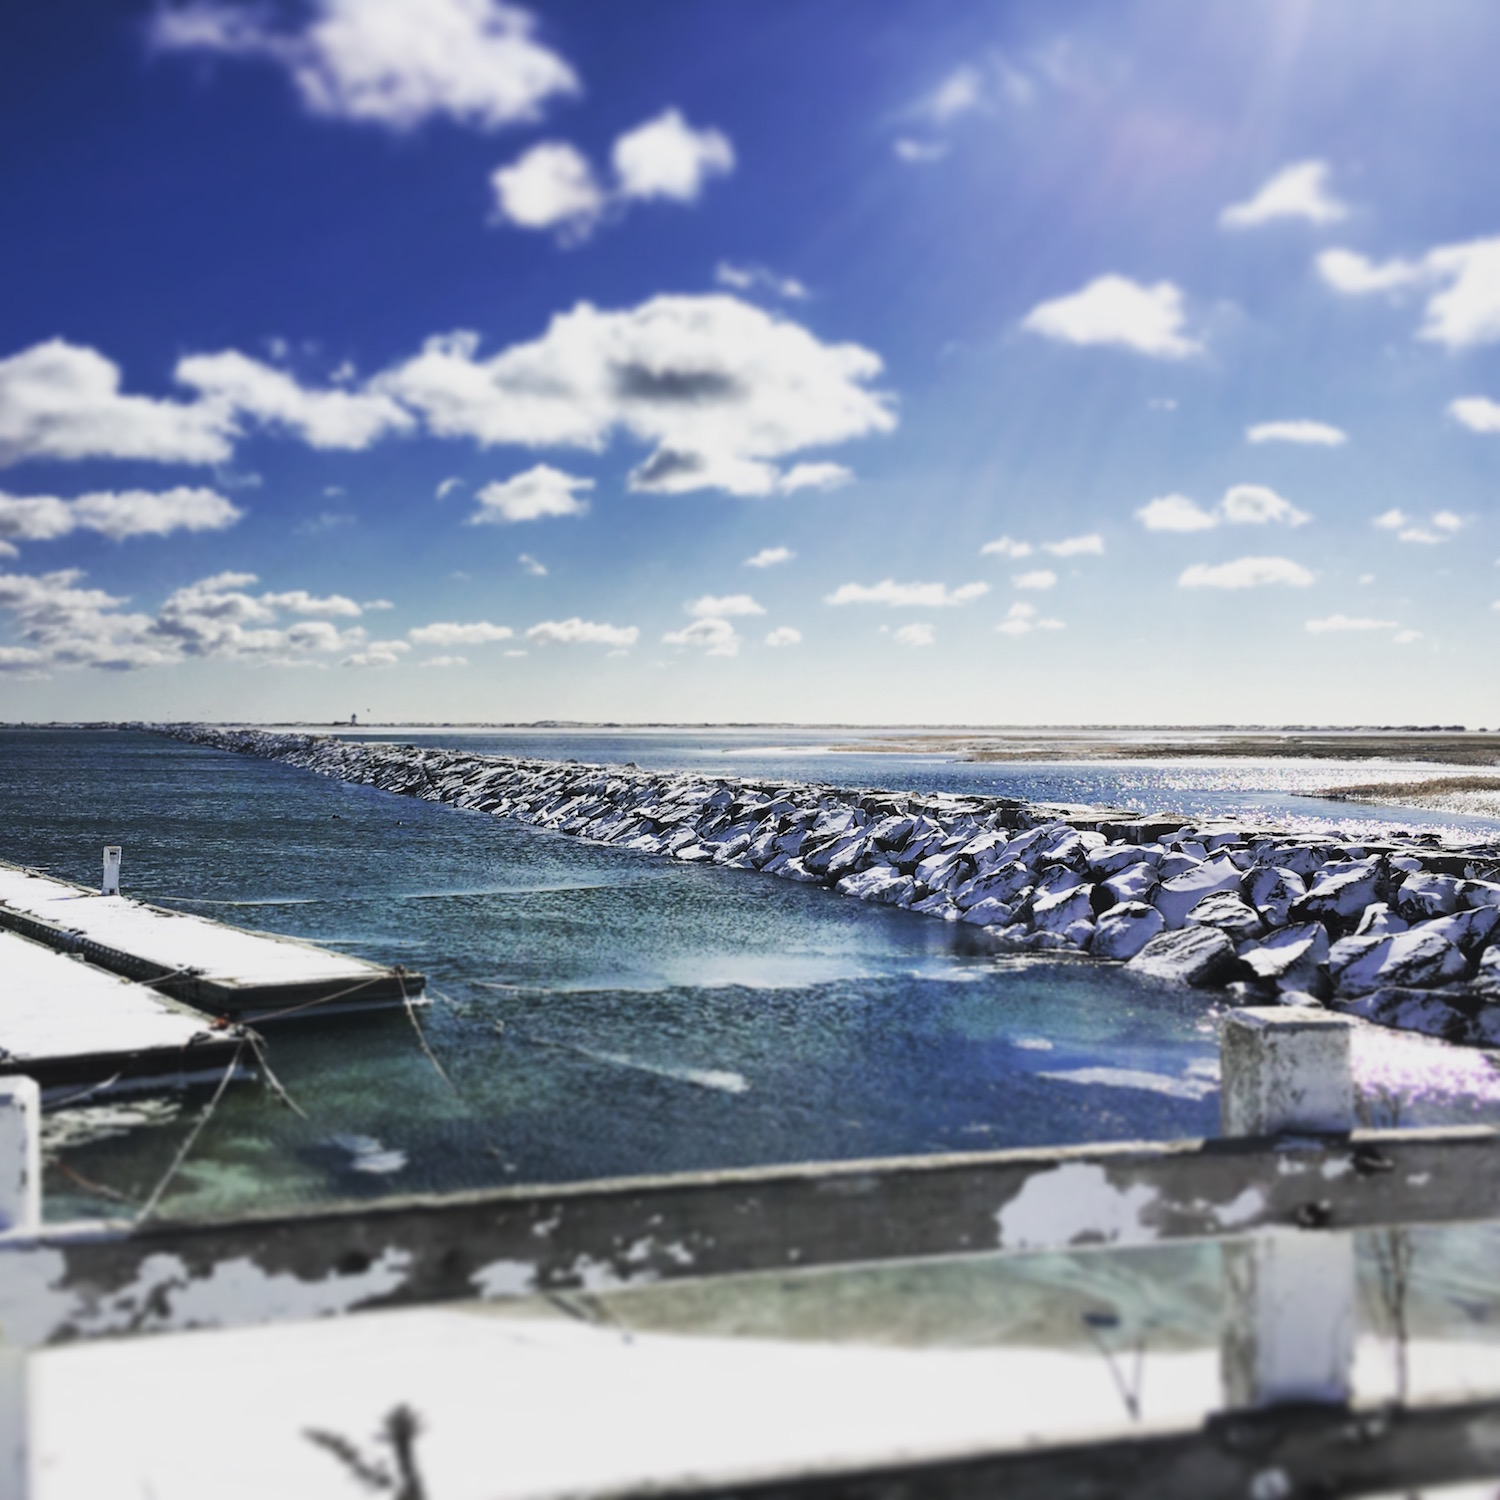 The Provincetown Inn at what feels like the end of the Earth, looking across the harbor at a snowy breakwater.